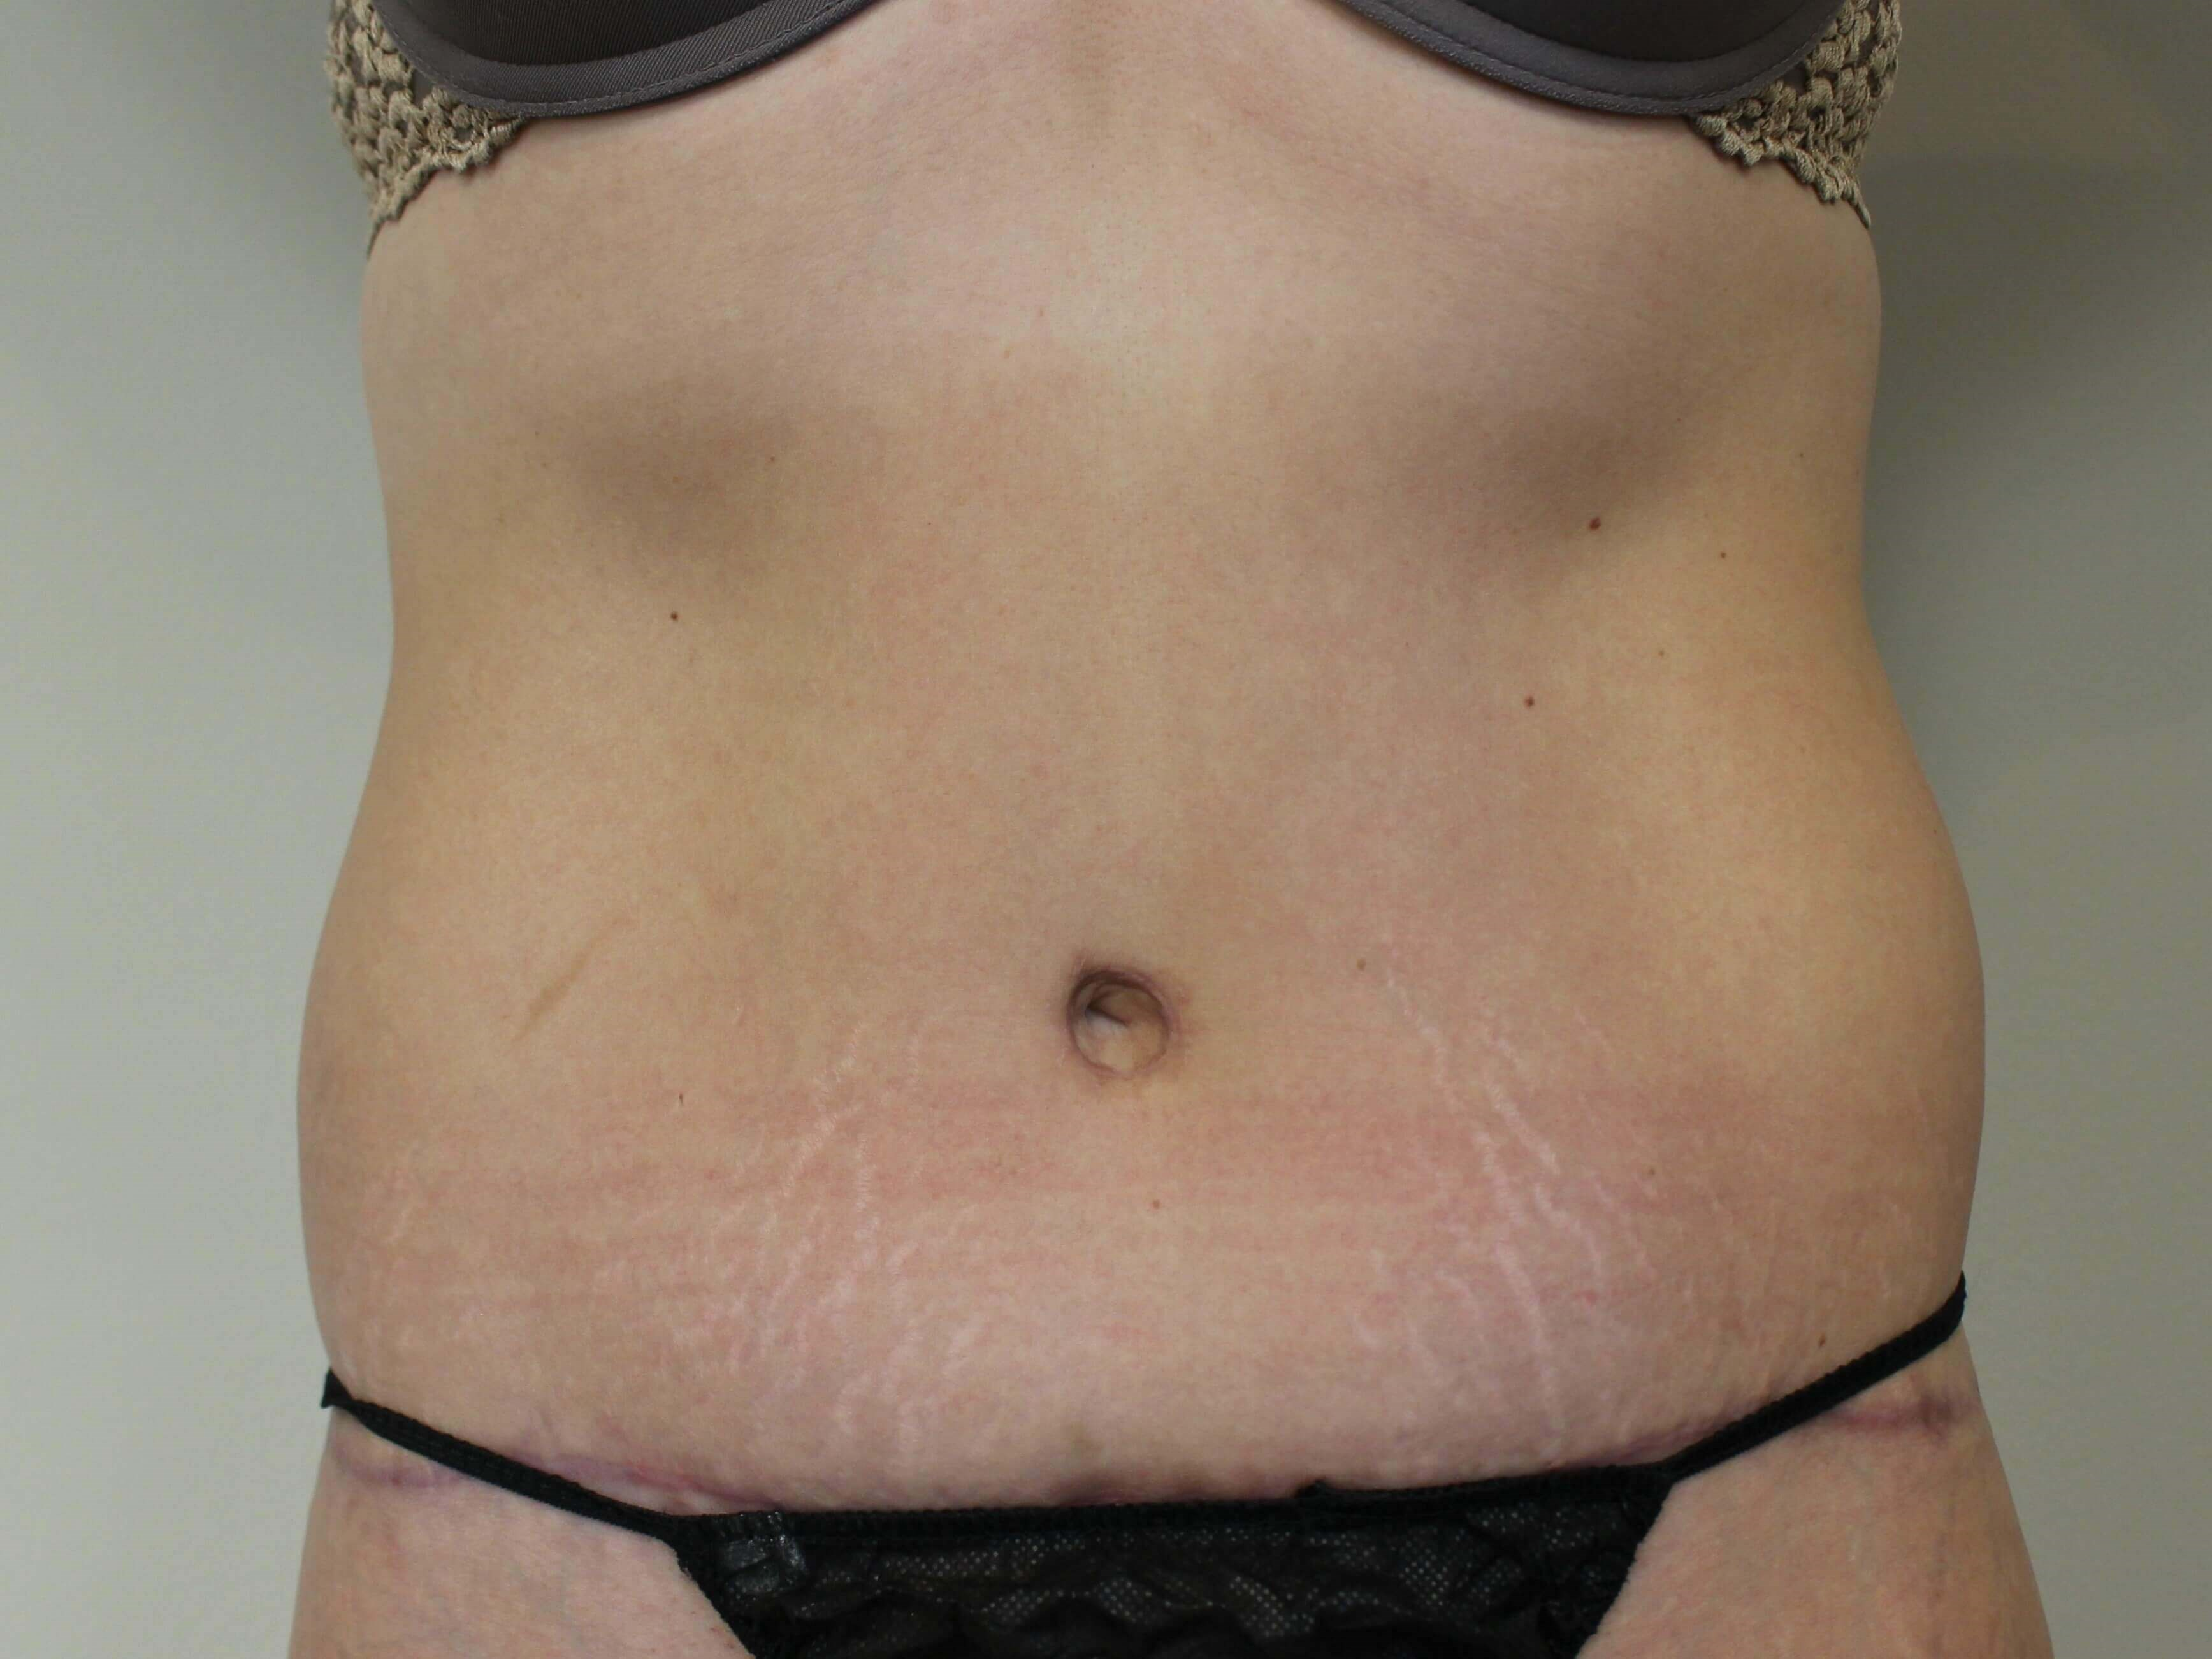 Tummy Tuck 4 Months After